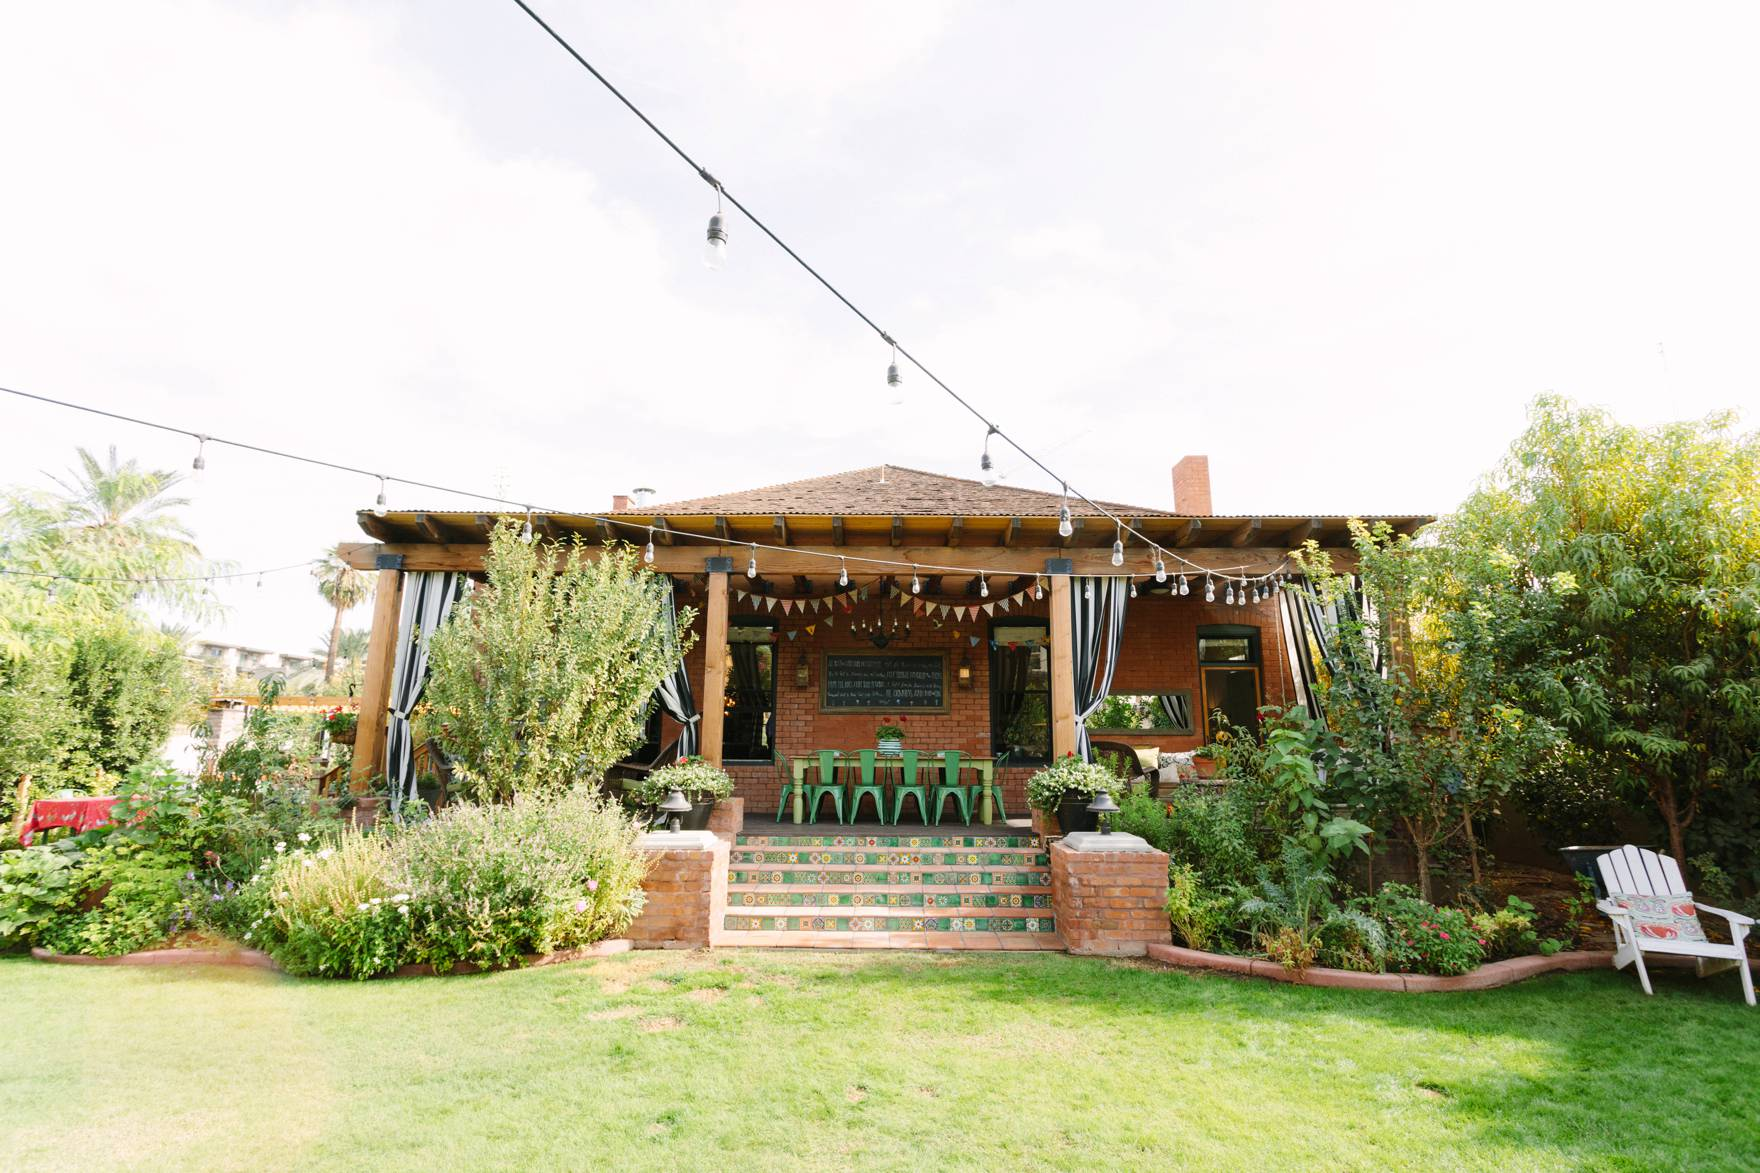 Home Tour of Boho Farm and Home in Downtown Phoenix - cottage brick style home from 1903 back porch bunt flags and casual seating, outdoor curtains